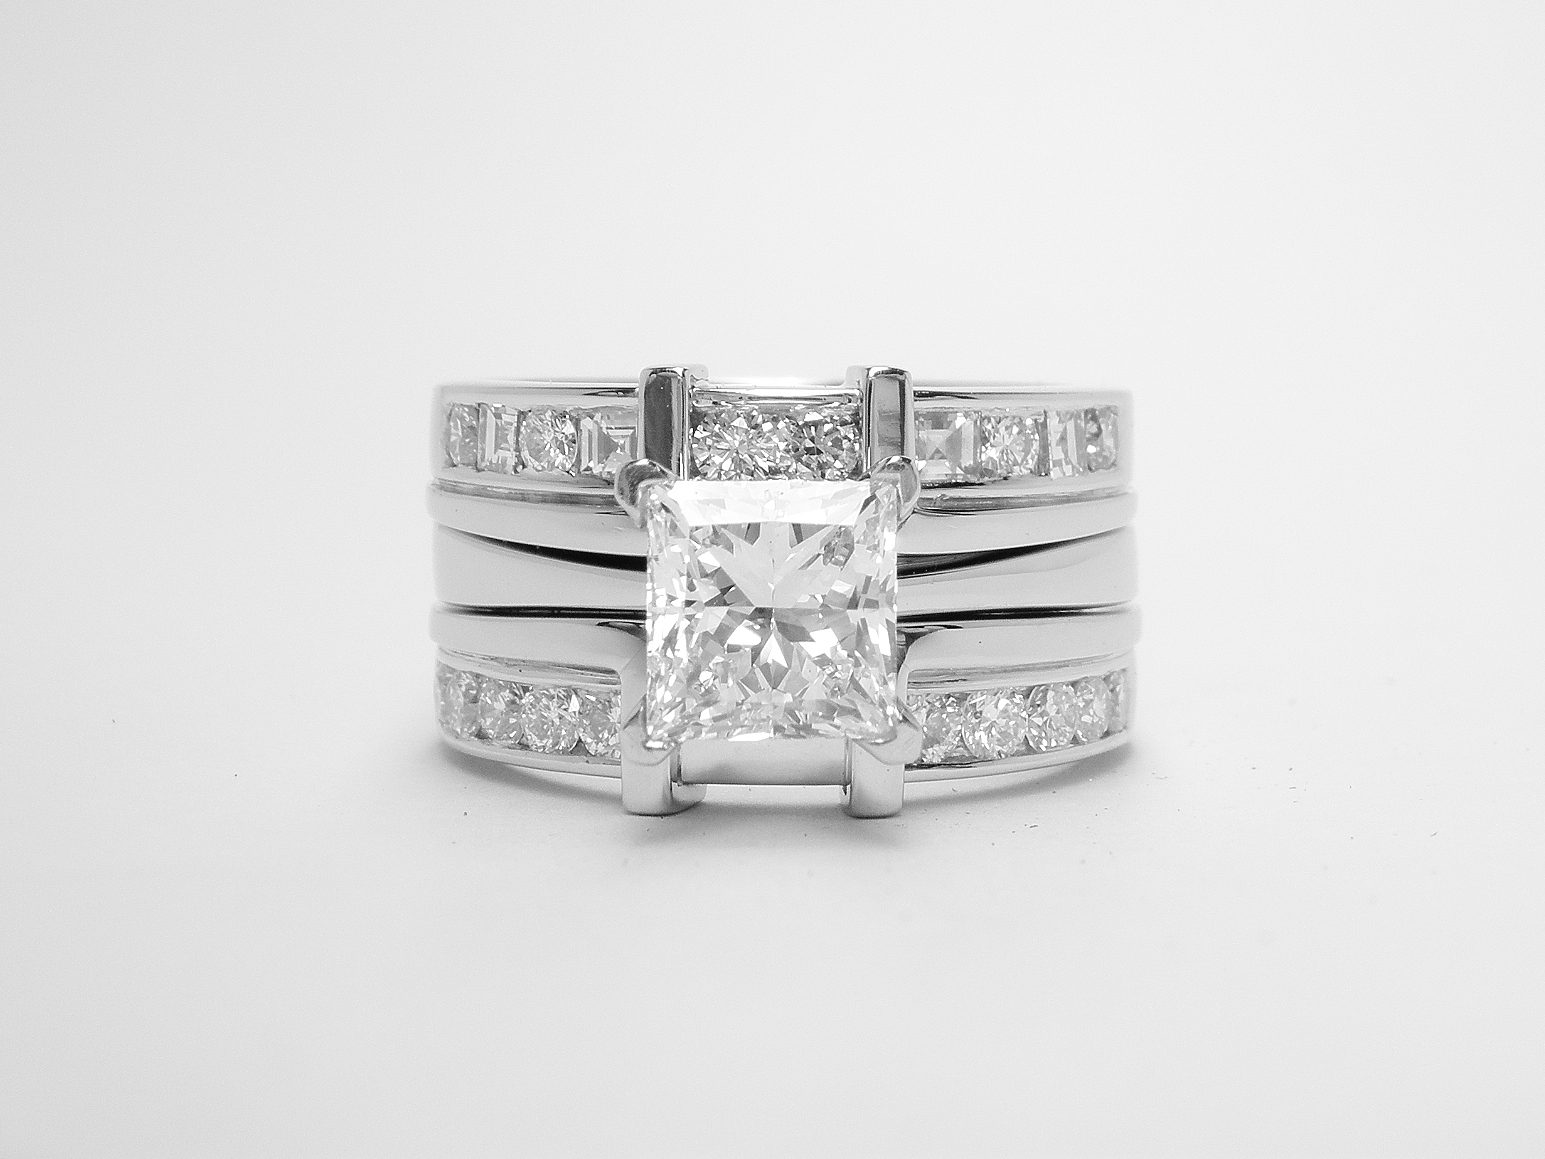 The engagement, wedding & eternity ring set.